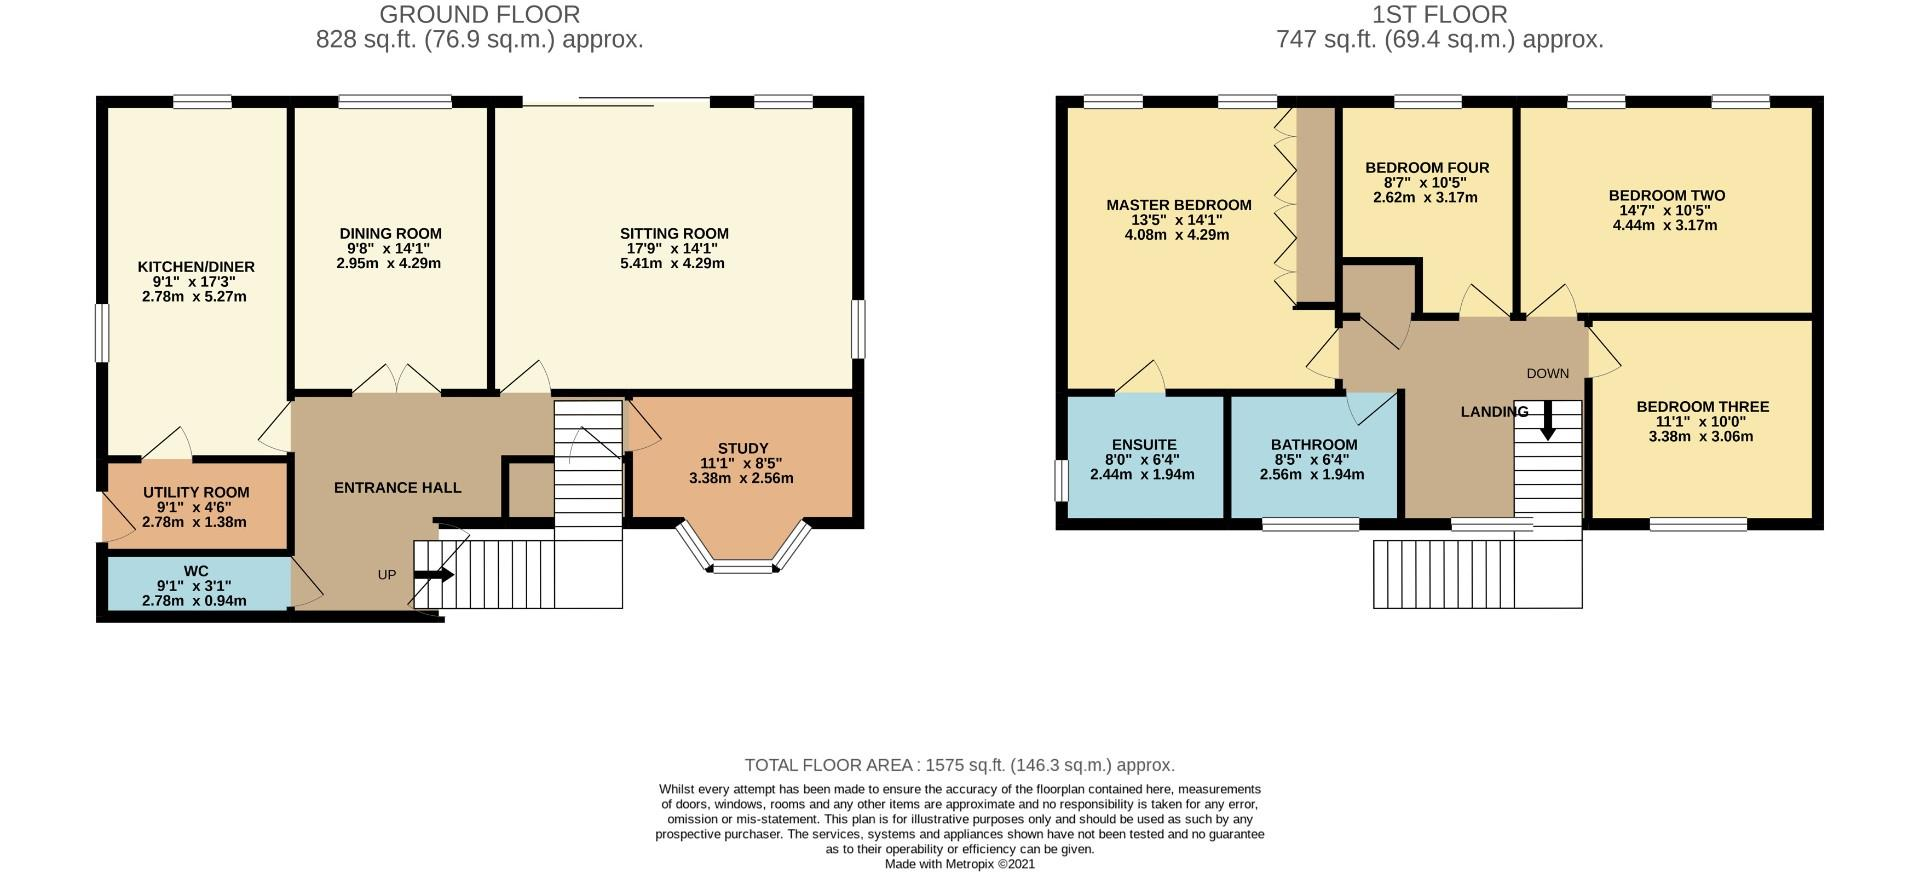 Floorplans For Hocknell Close, Wootton, NORTHAMPTON